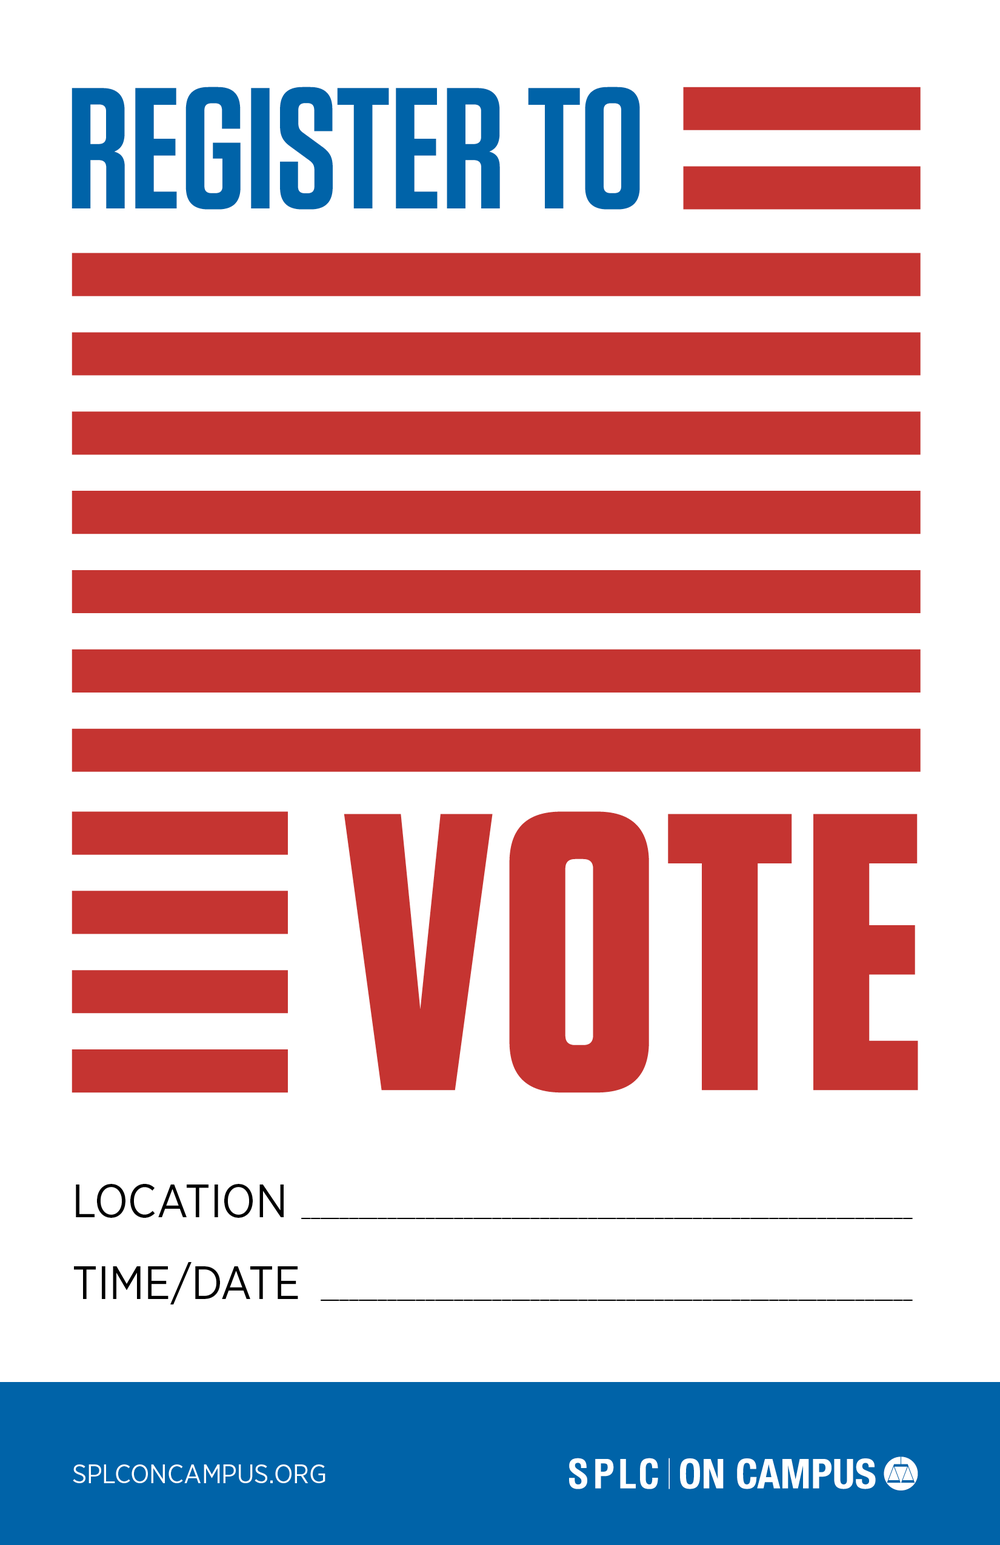 SOC_2018 Vote Campaign_Register to Vote Poster_FINAL.png